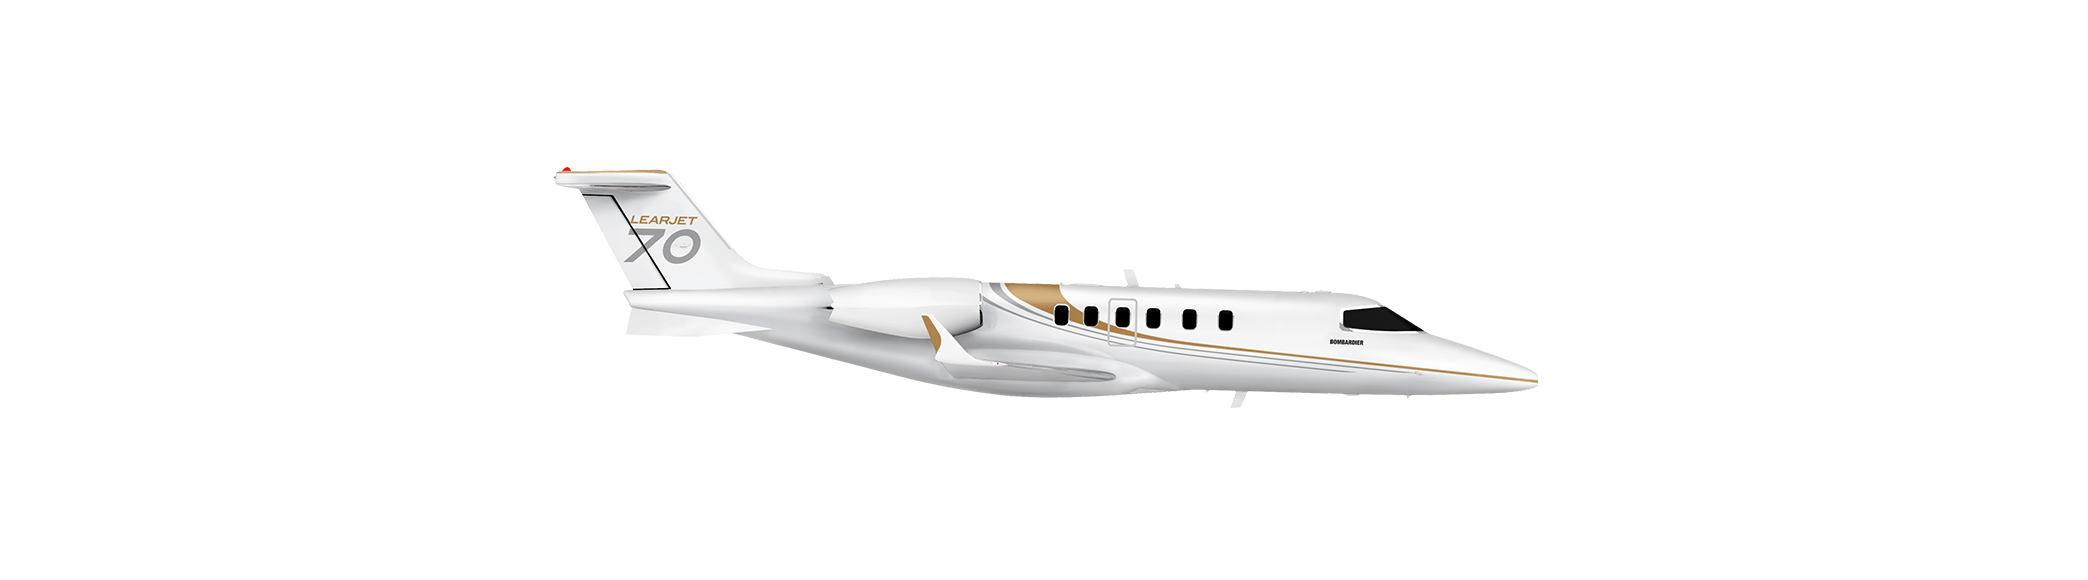 learjet70 side image